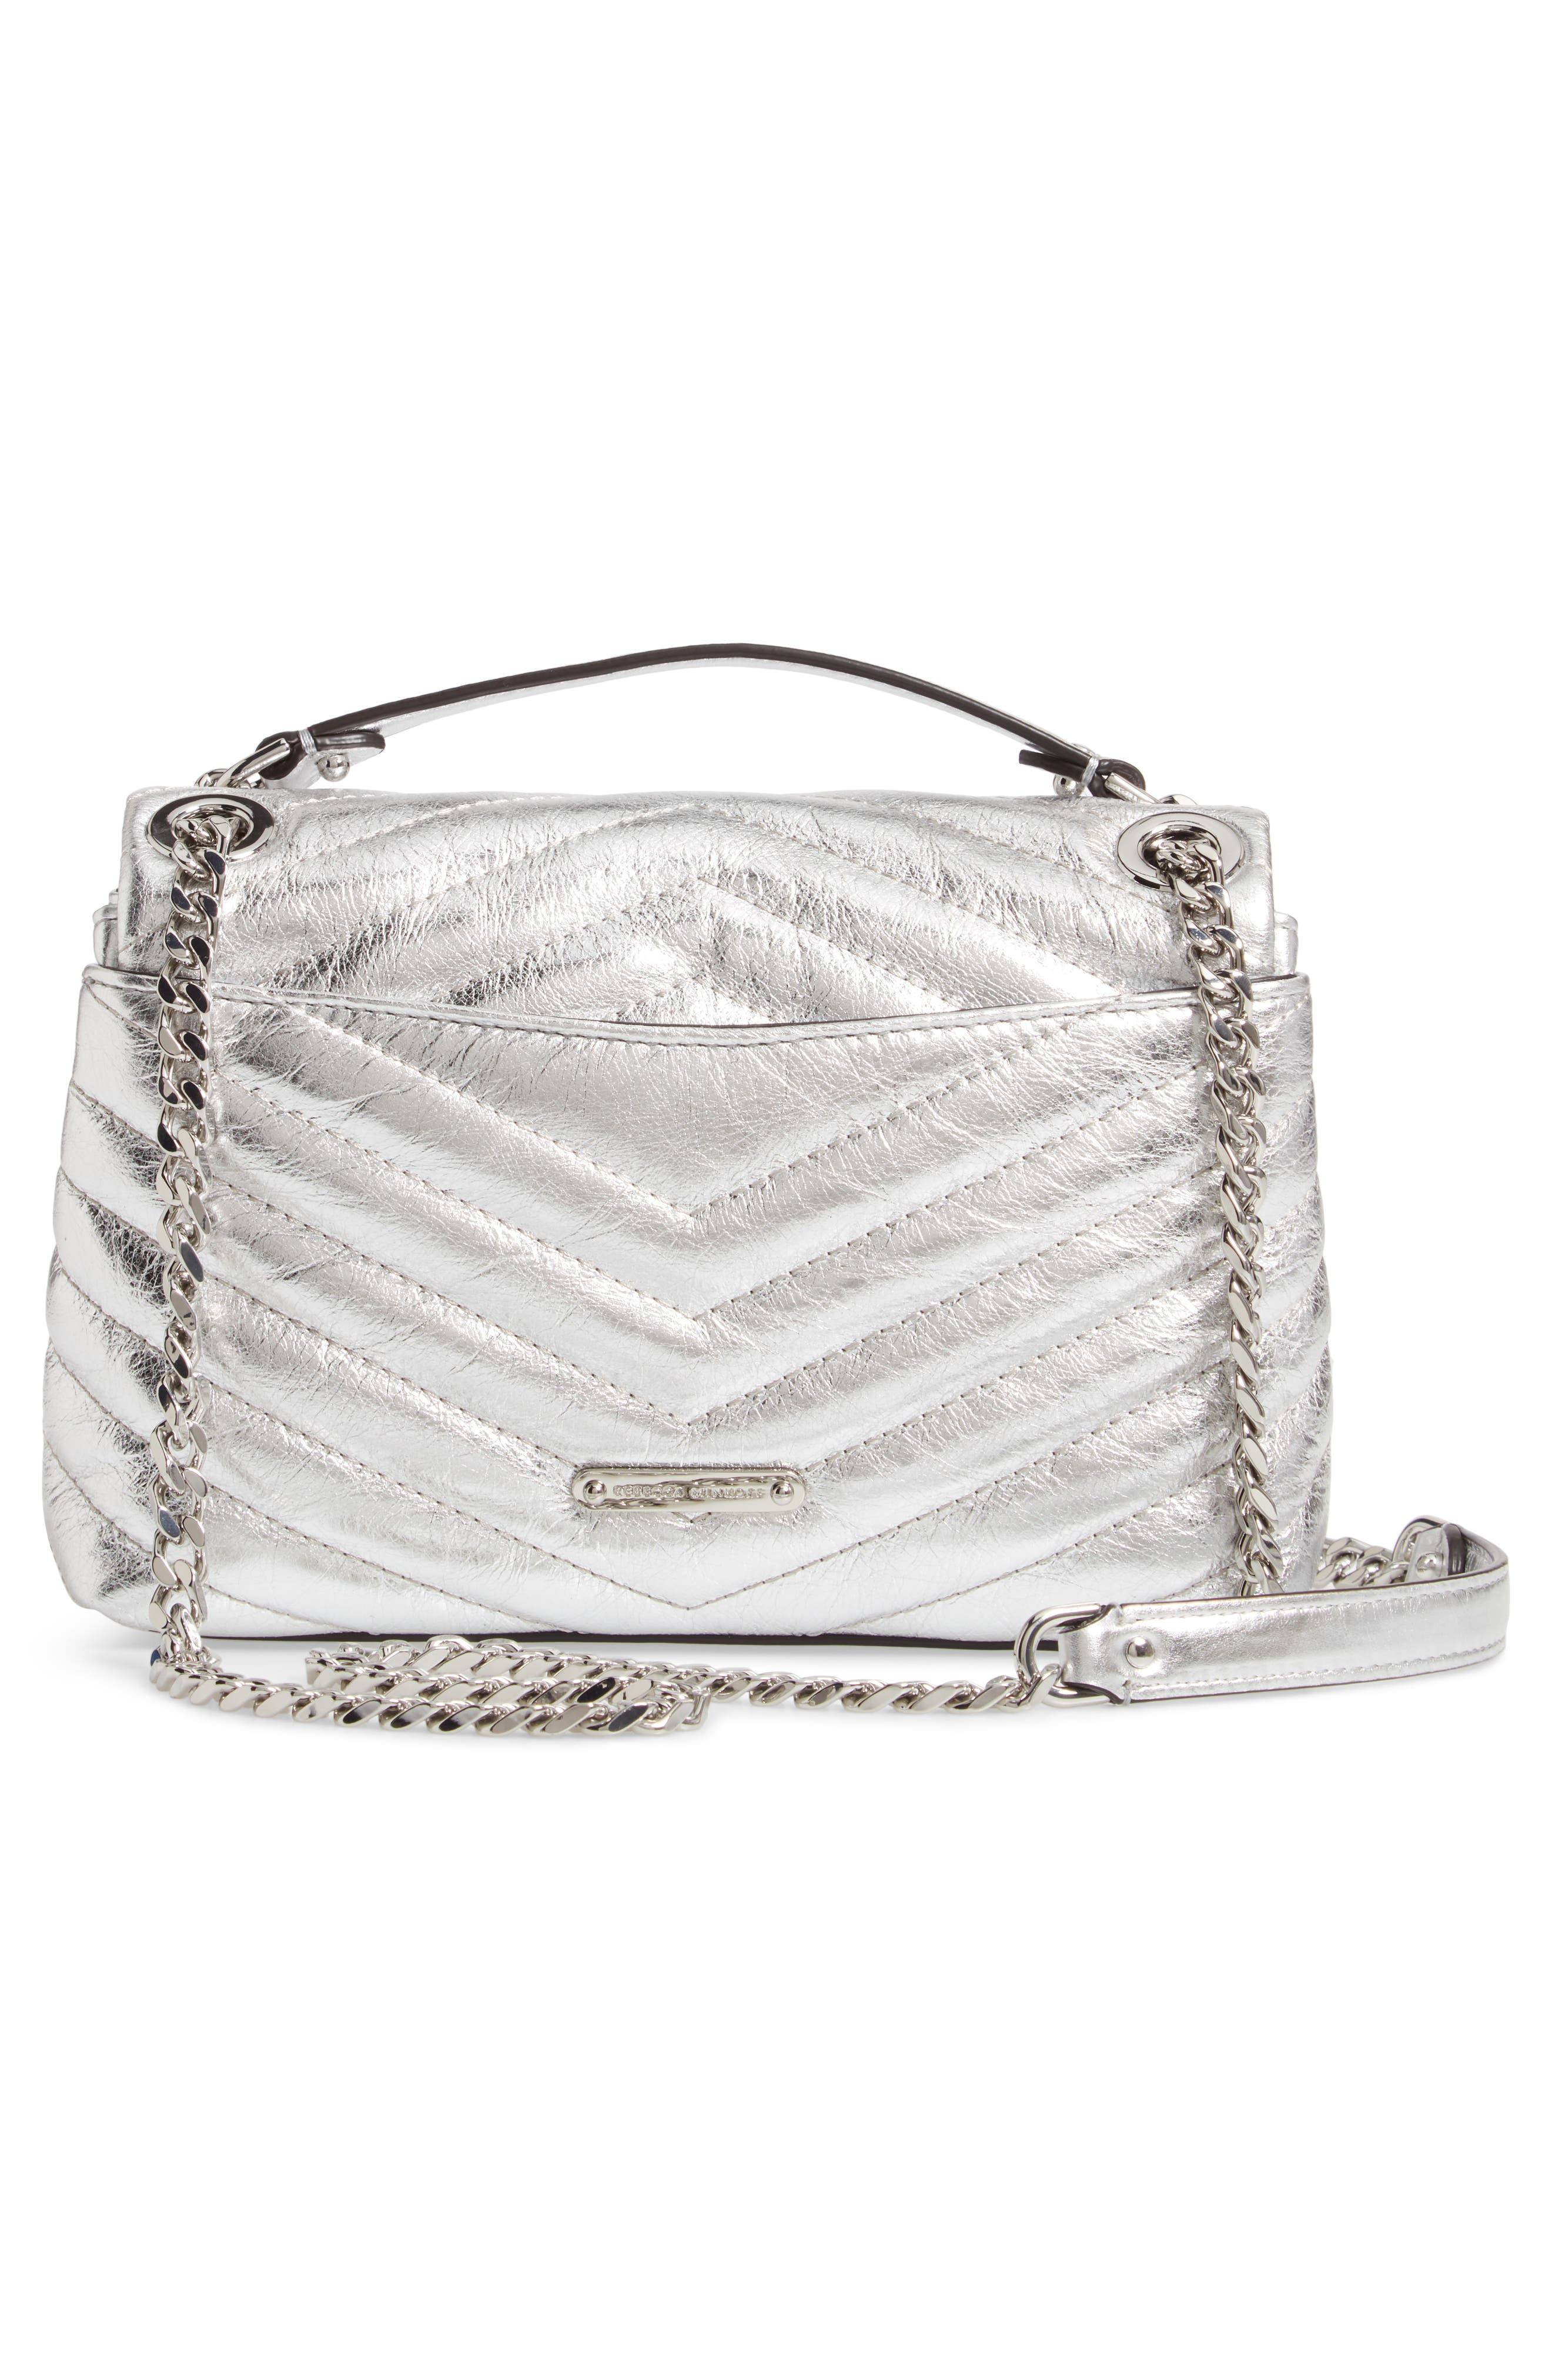 REBECCA MINKOFF, Edie Metallic Leather Shoulder Bag, Alternate thumbnail 3, color, SILVER